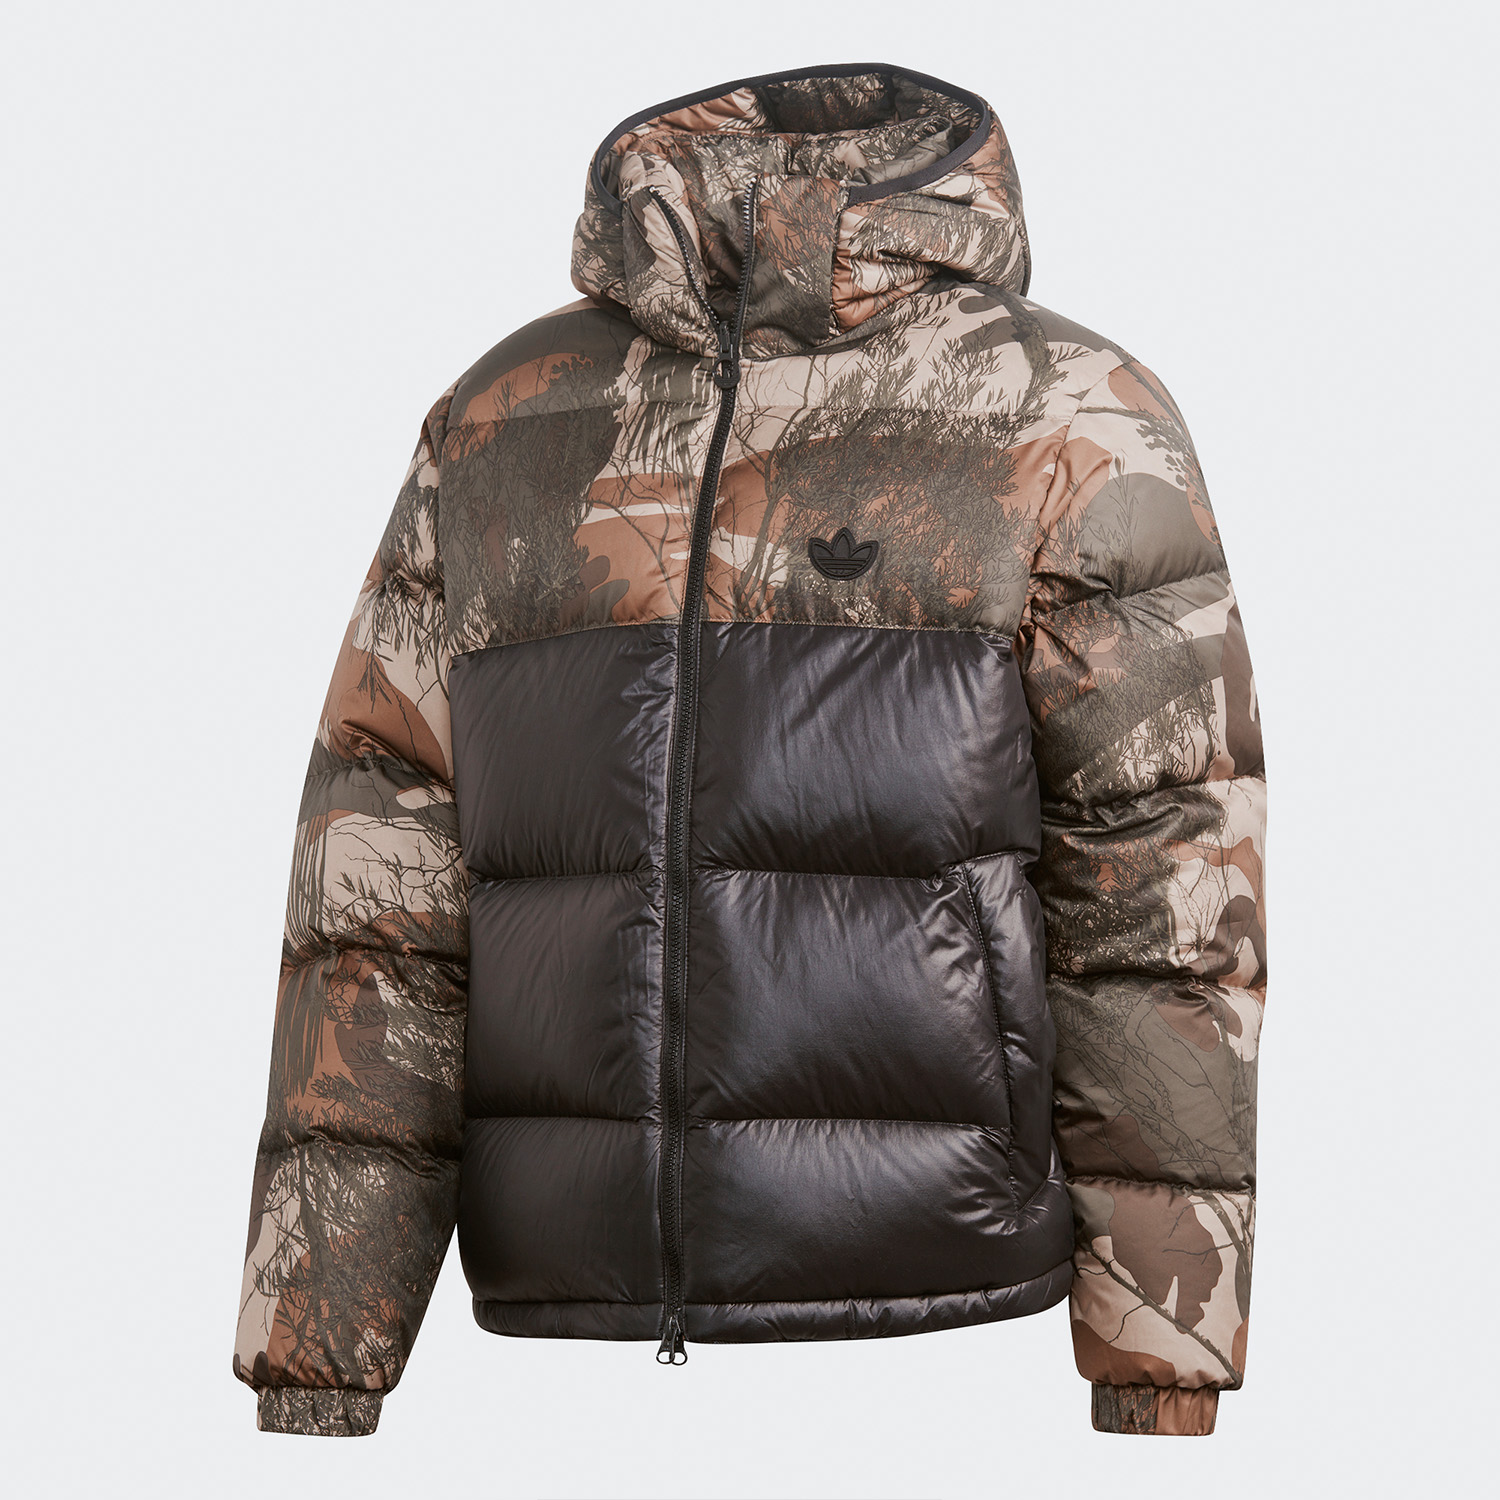 Adidas Original Down Regen Camo Coat GH1486 Reversible Winter Down Jacket